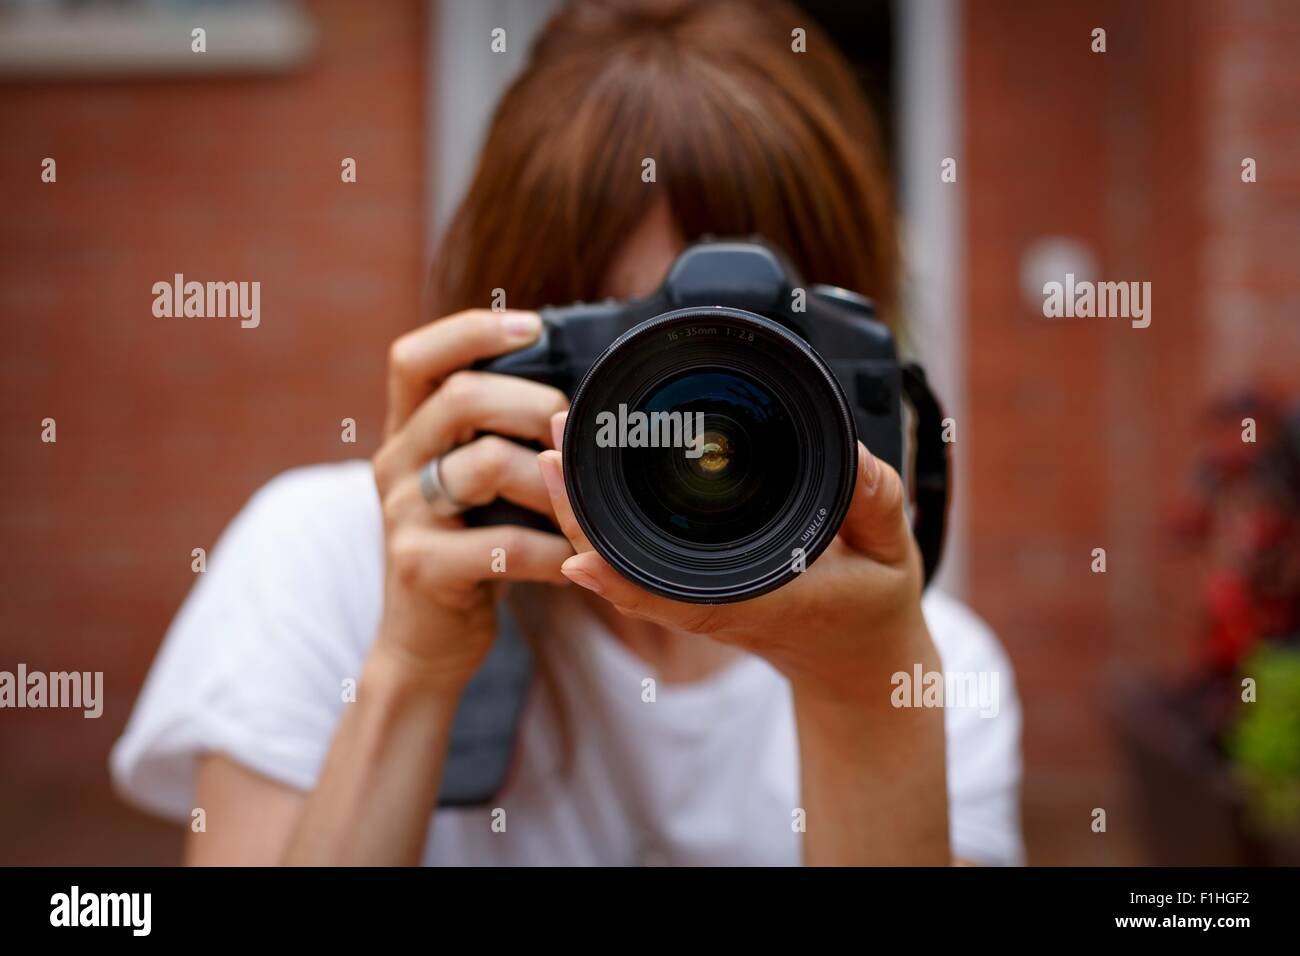 Mid adult woman using digital camera, face obscured - Stock Image